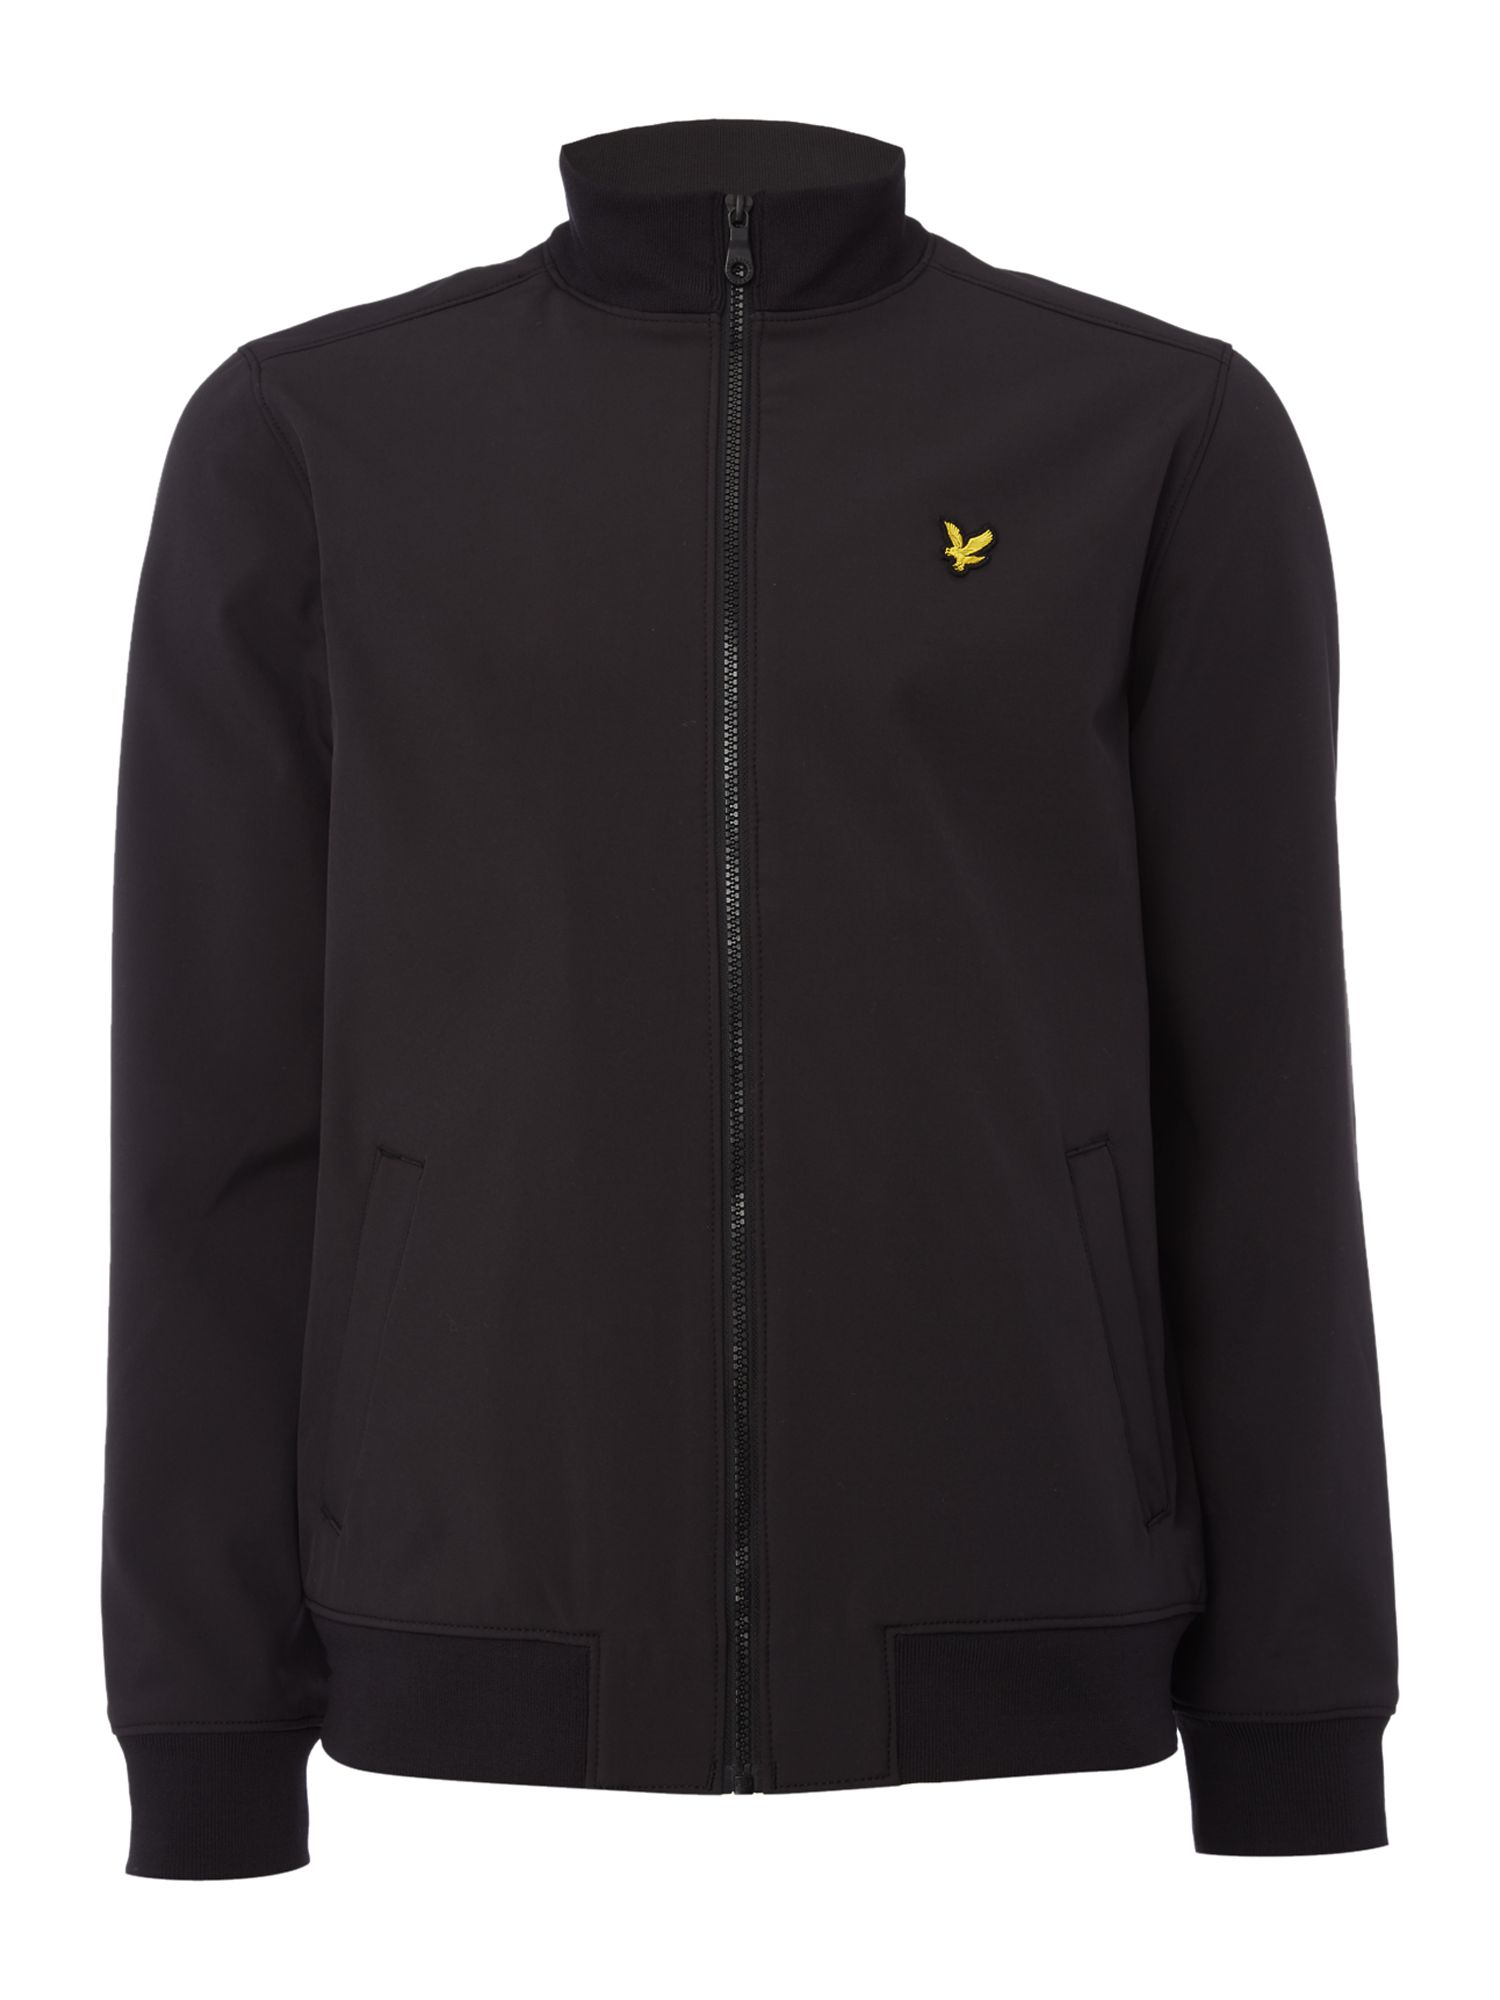 Lyle and Scott Men's Lyle and Scott Zip through soft shell jacket, Black